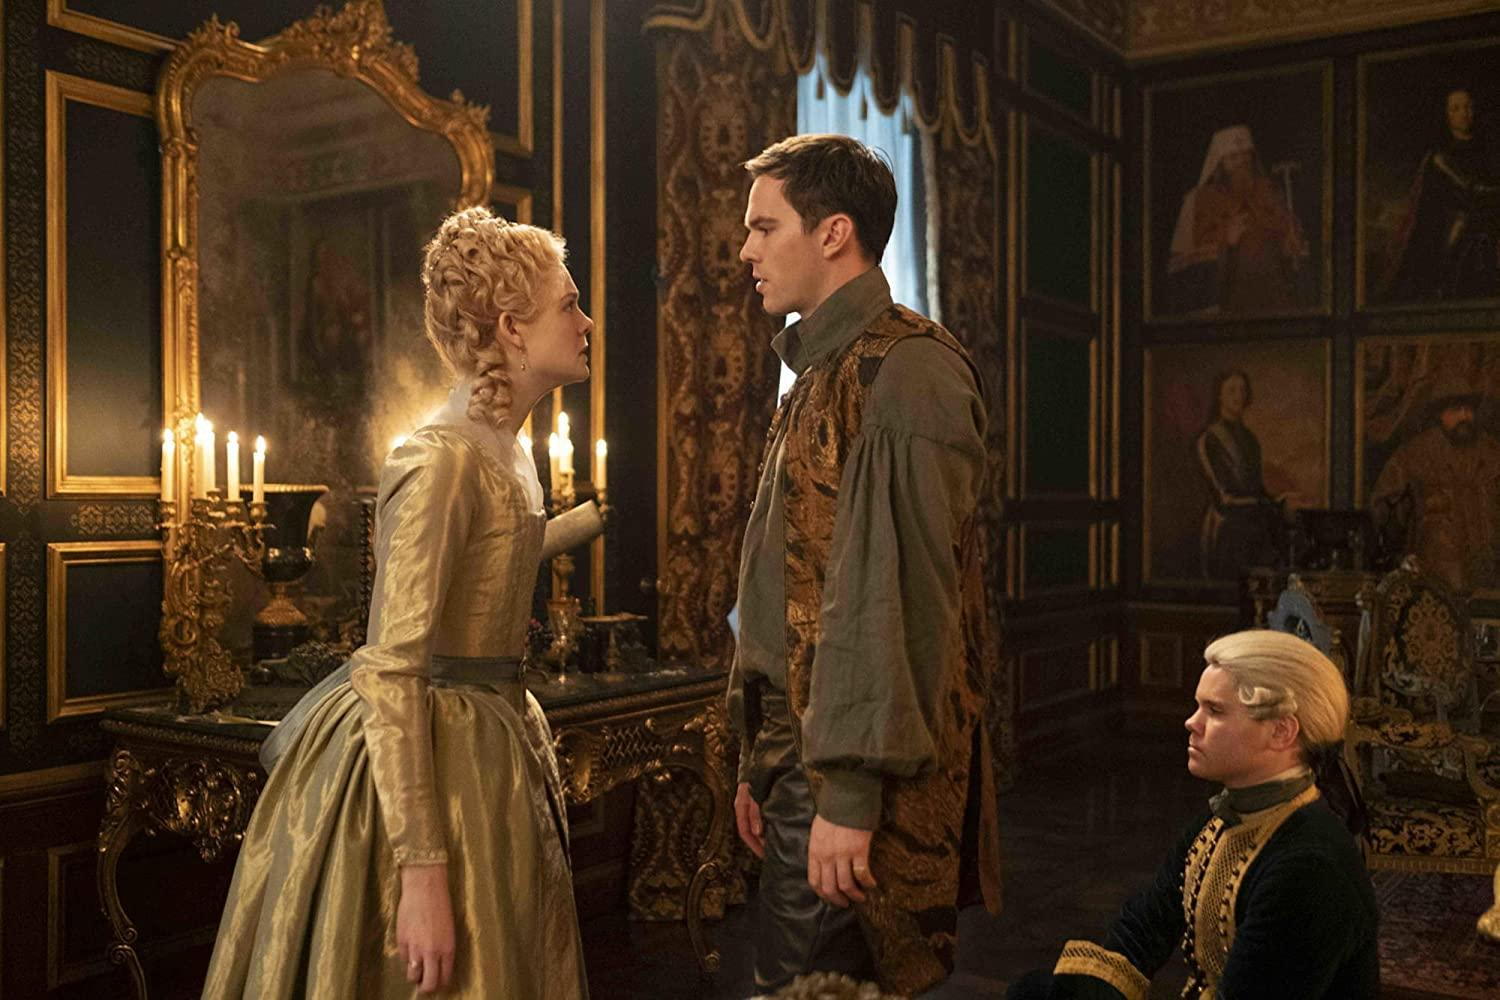 The Great (2020). Catherine, this time in a shiny yellow-gold dress with long sleeves, addresses Peter (Nicholas Hoult) with an angry expression. Peter is a young white man with short brown hair, wearing a khaki coloured shirt with billowing sleeves and a bronze waistcoat. They are in an elaborate palace room with large oil painting portraits and gilded mirrors adorning the walls. A young footman with a white wig and black and gold uniform kneels on the ground beside Peter, subservient.